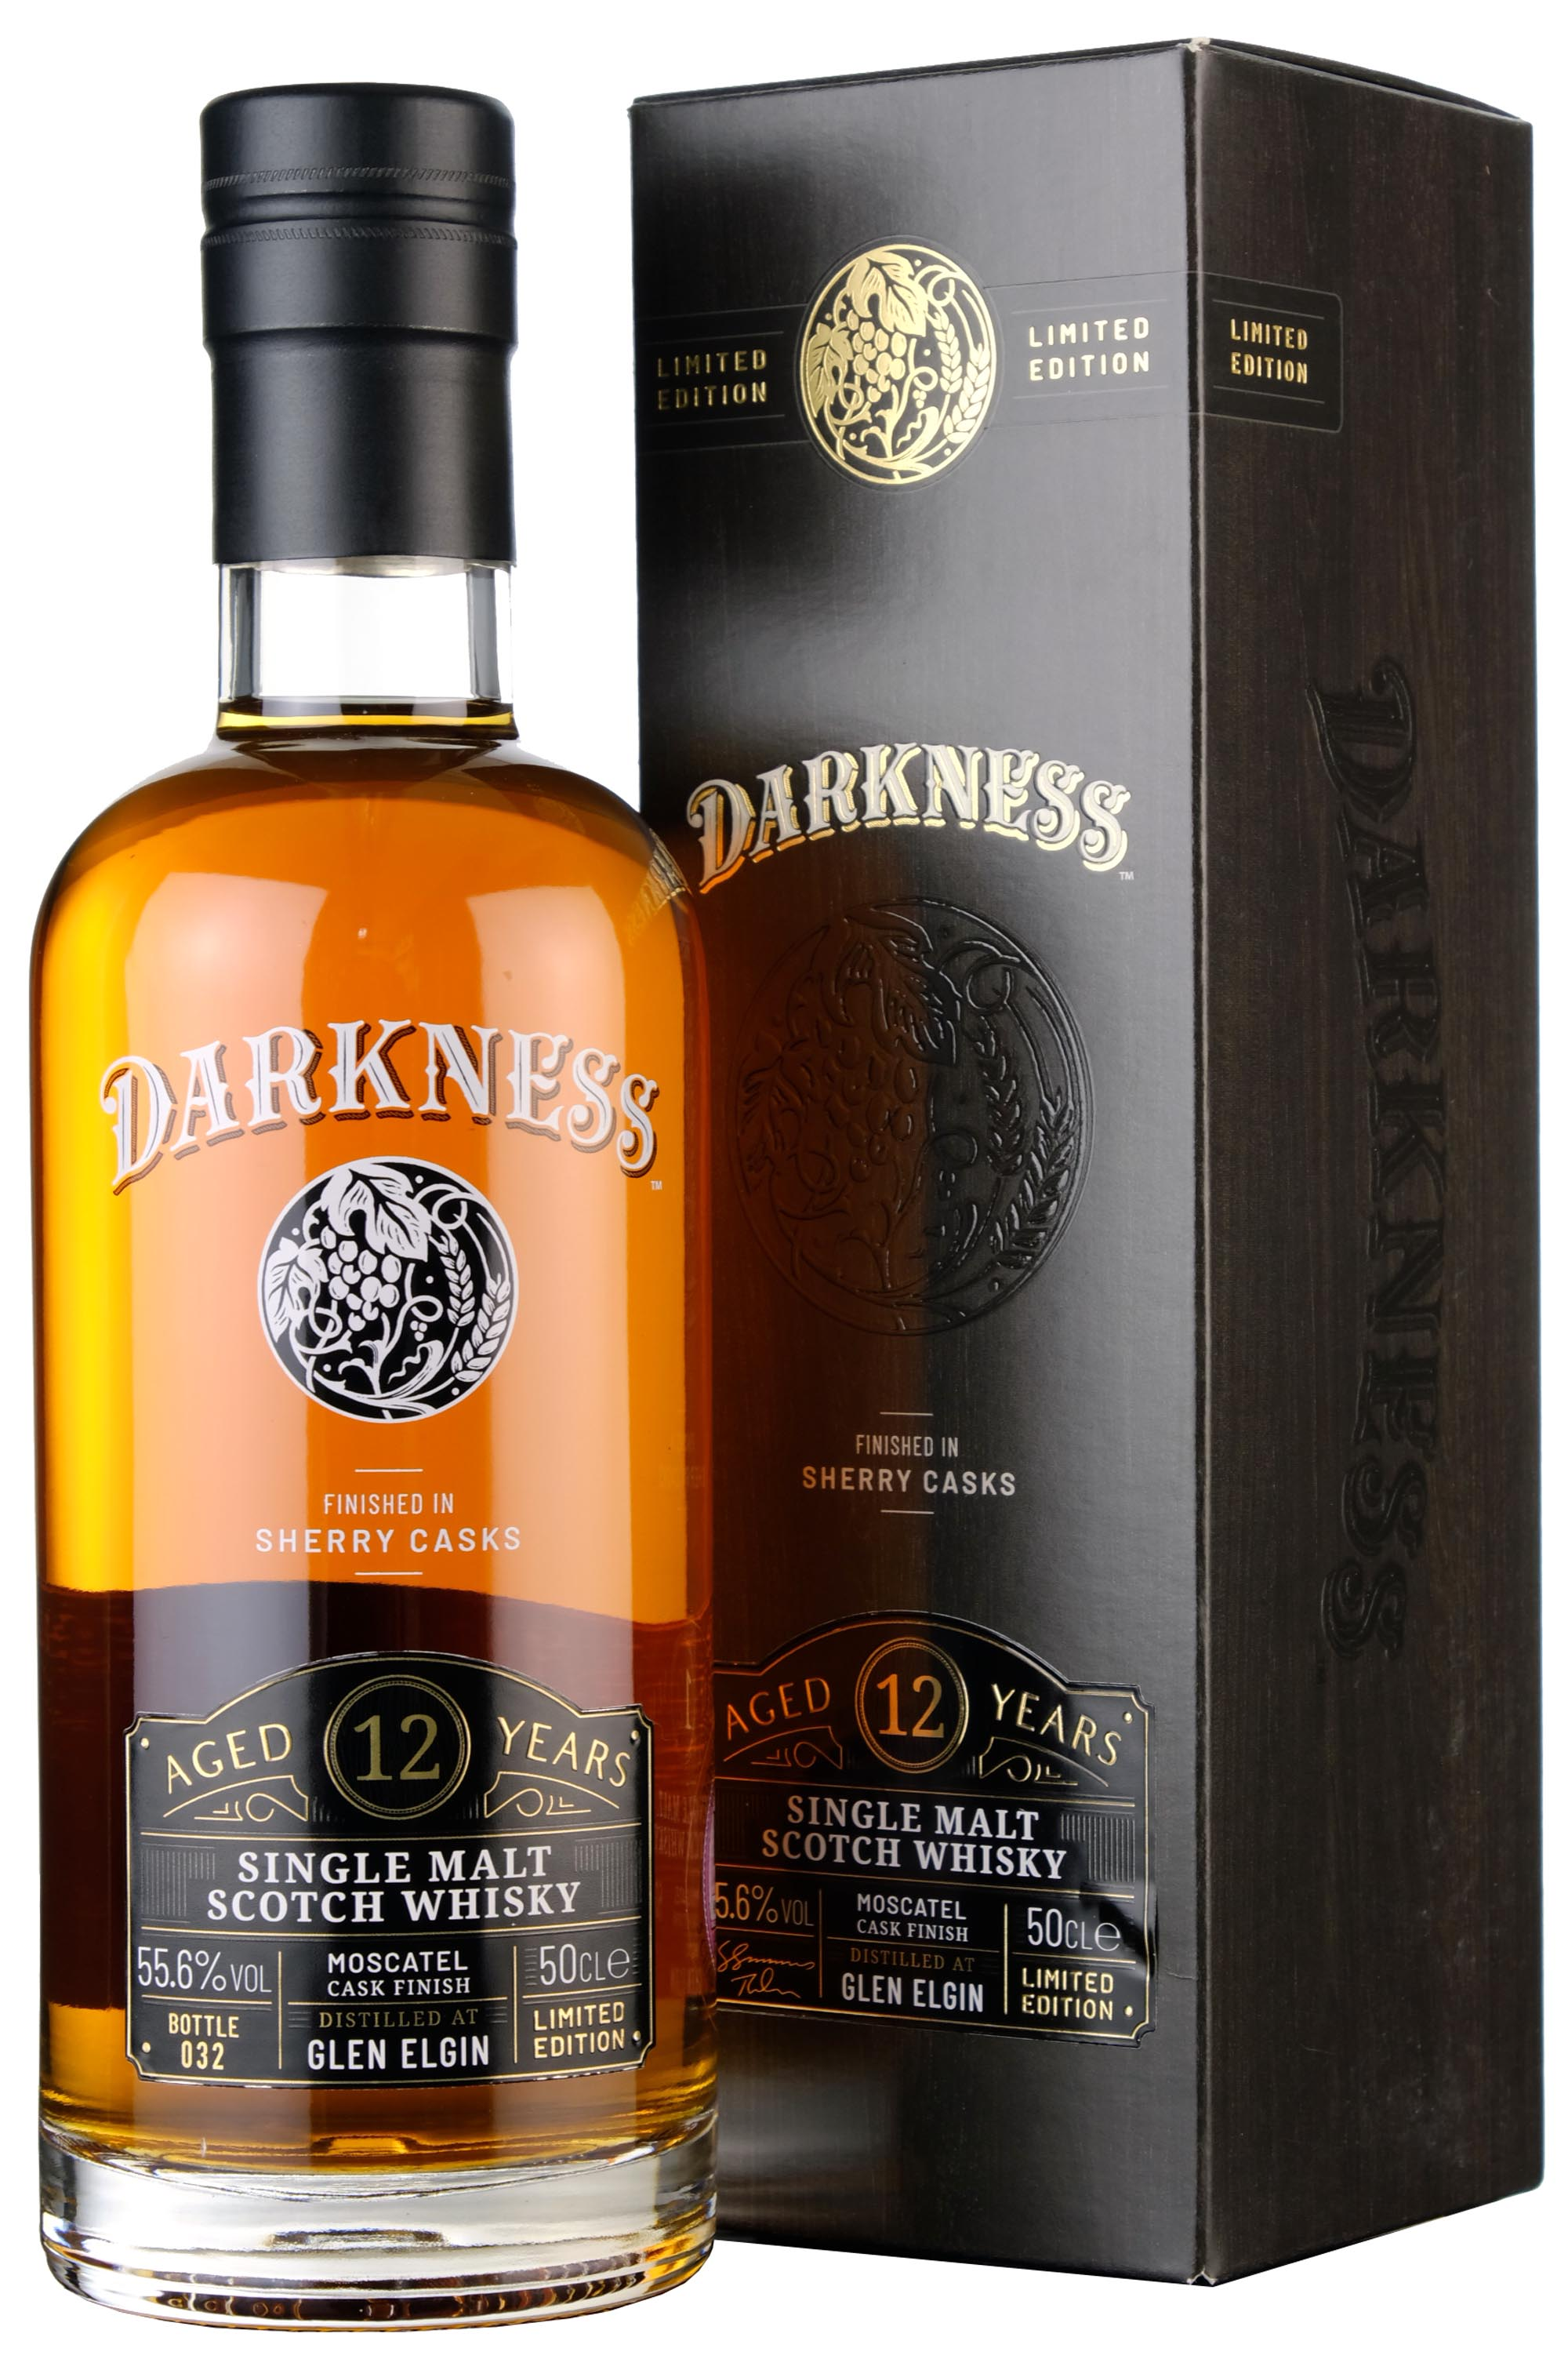 Glen Elgin 12 Year Old | Darkness